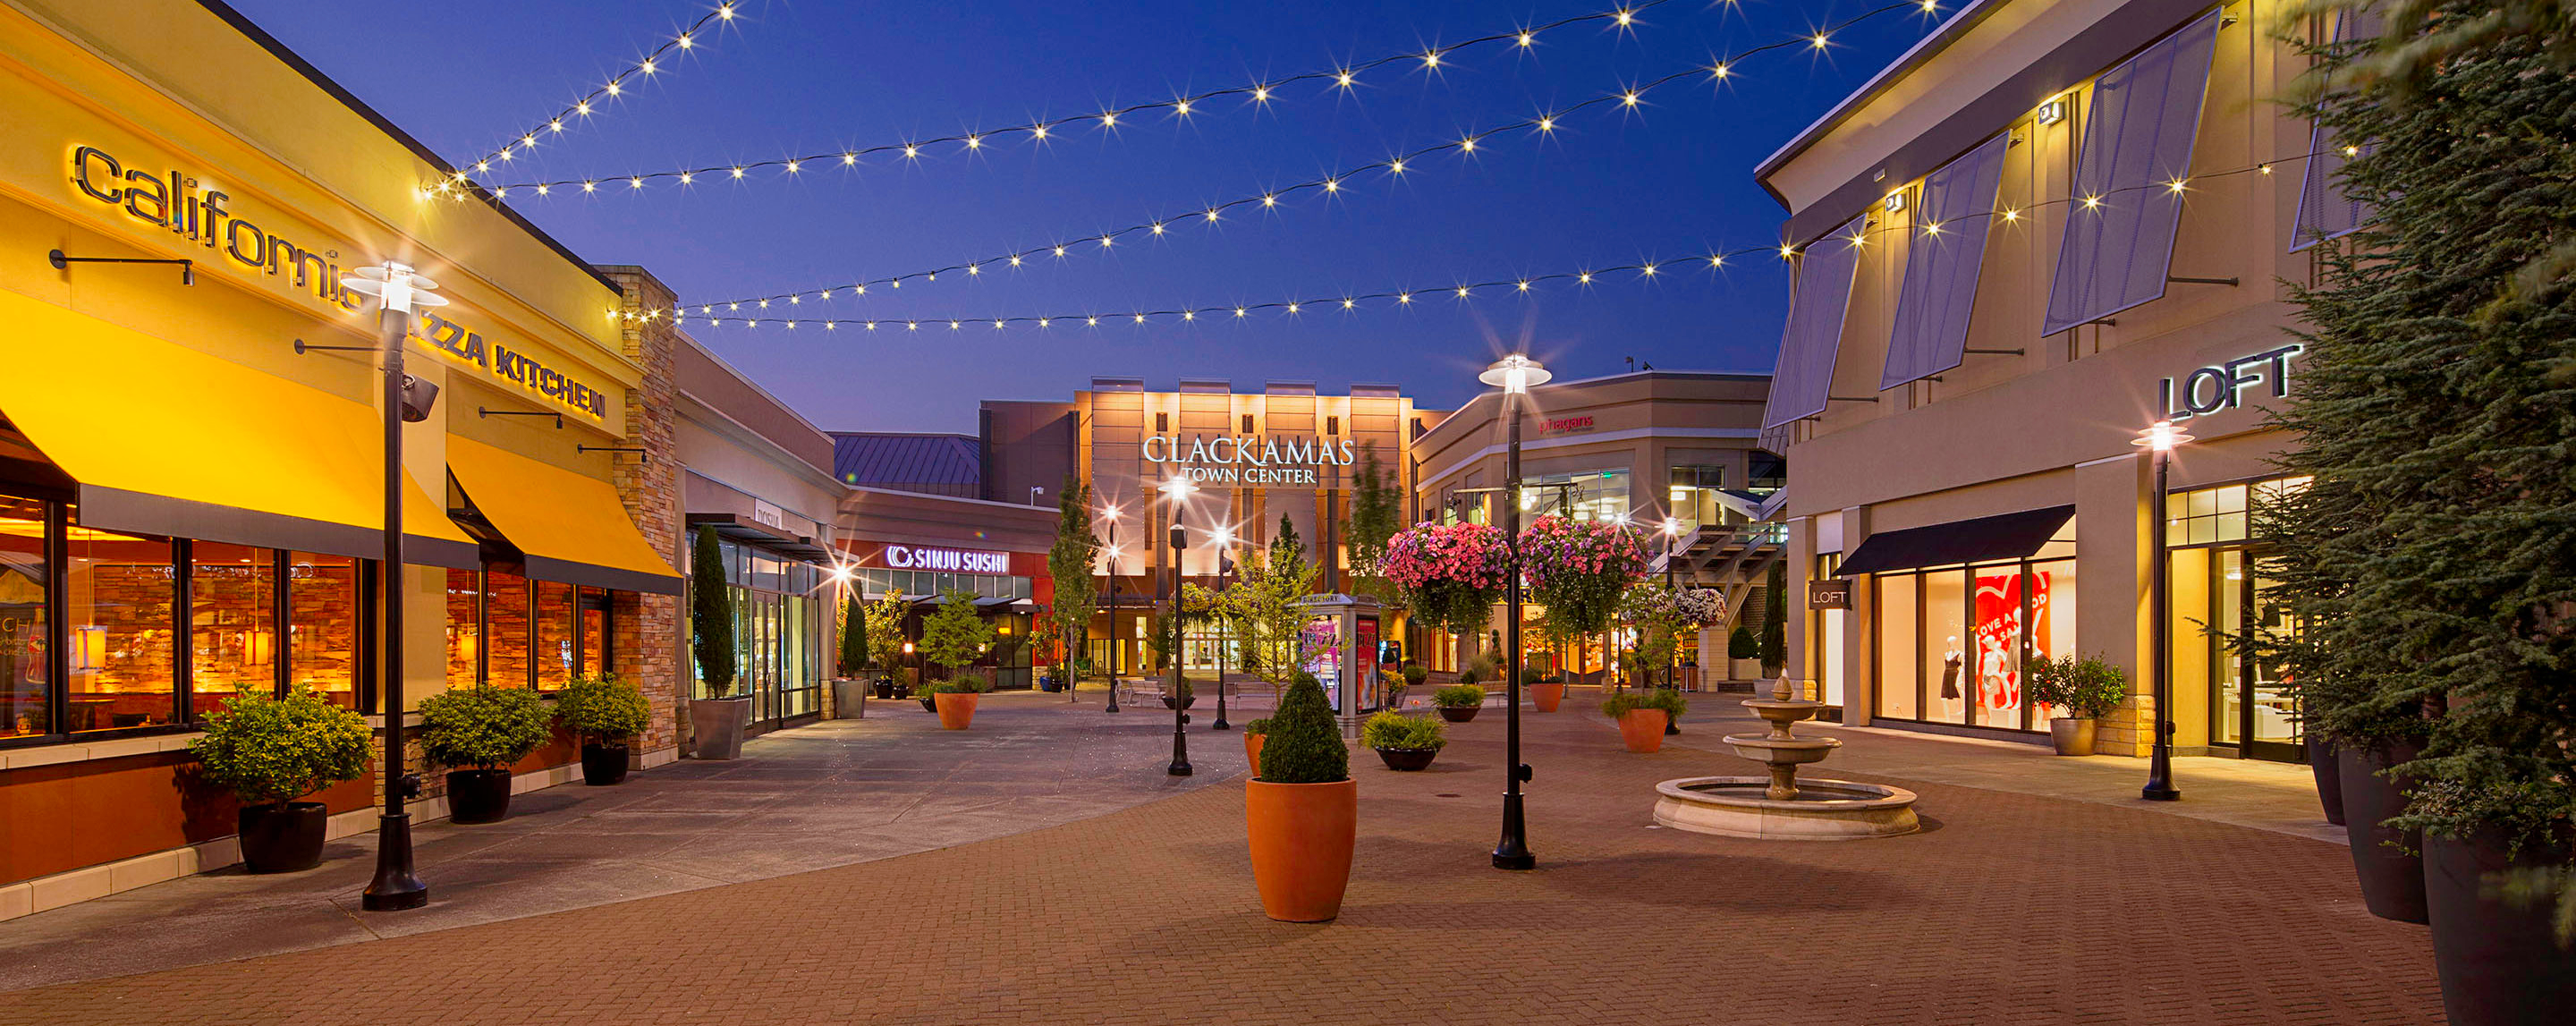 Clackamas Town Center is a shopping mall established in in the Portland, Oregon, metropolitan area, located on unincorporated land in the Clackamas area of Clackamas .